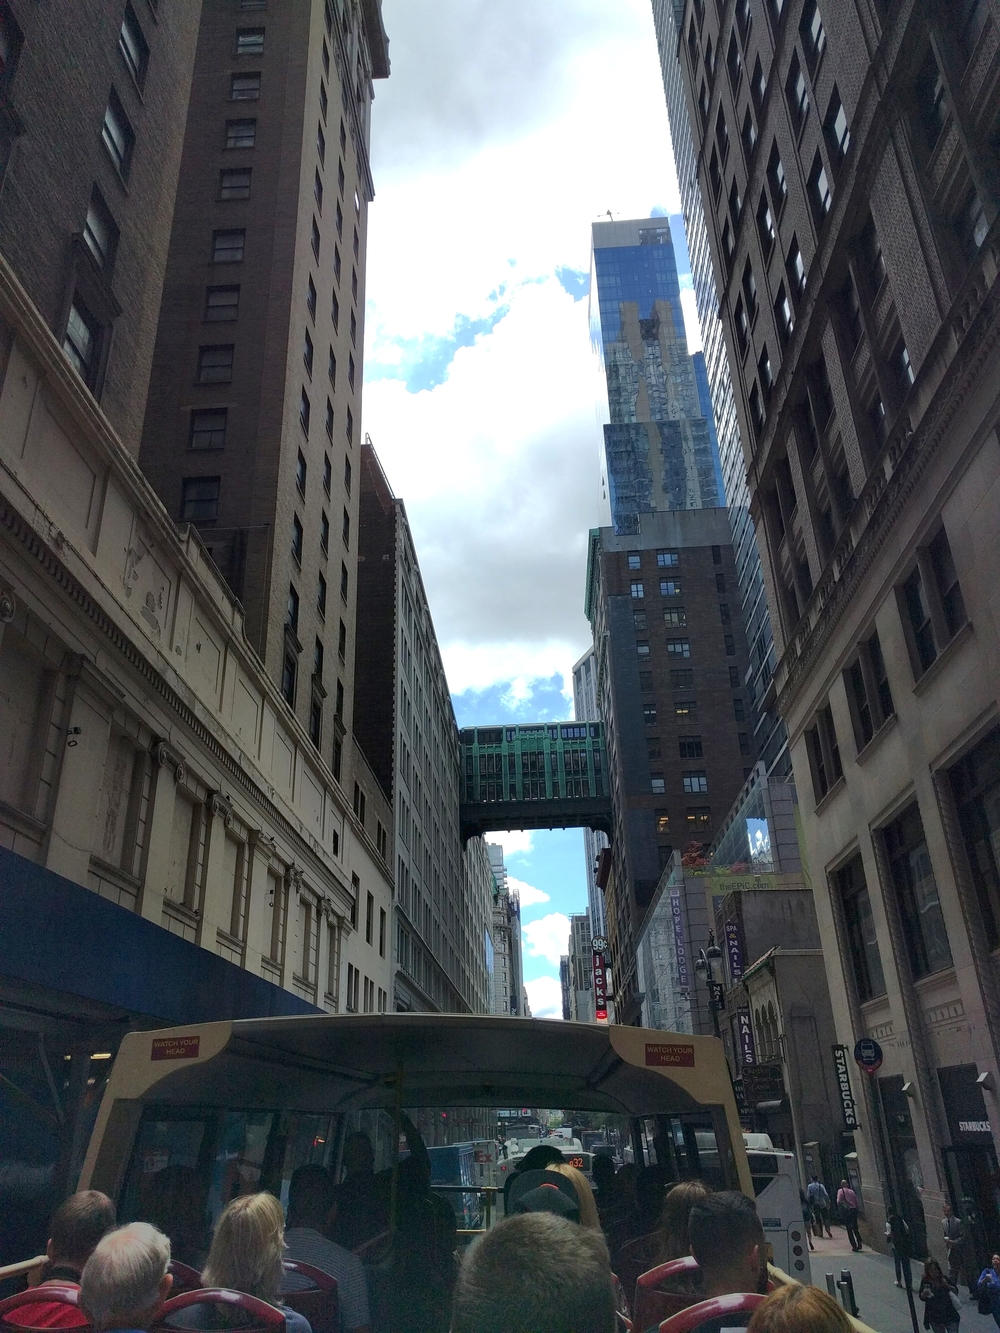 This bridge was made because people believed that New York would be a city in the sky, and that you could get from place to place without having to go down to the street. I thought it was interesting that the idea didn't work there, but it worked in Charlotte, NC.